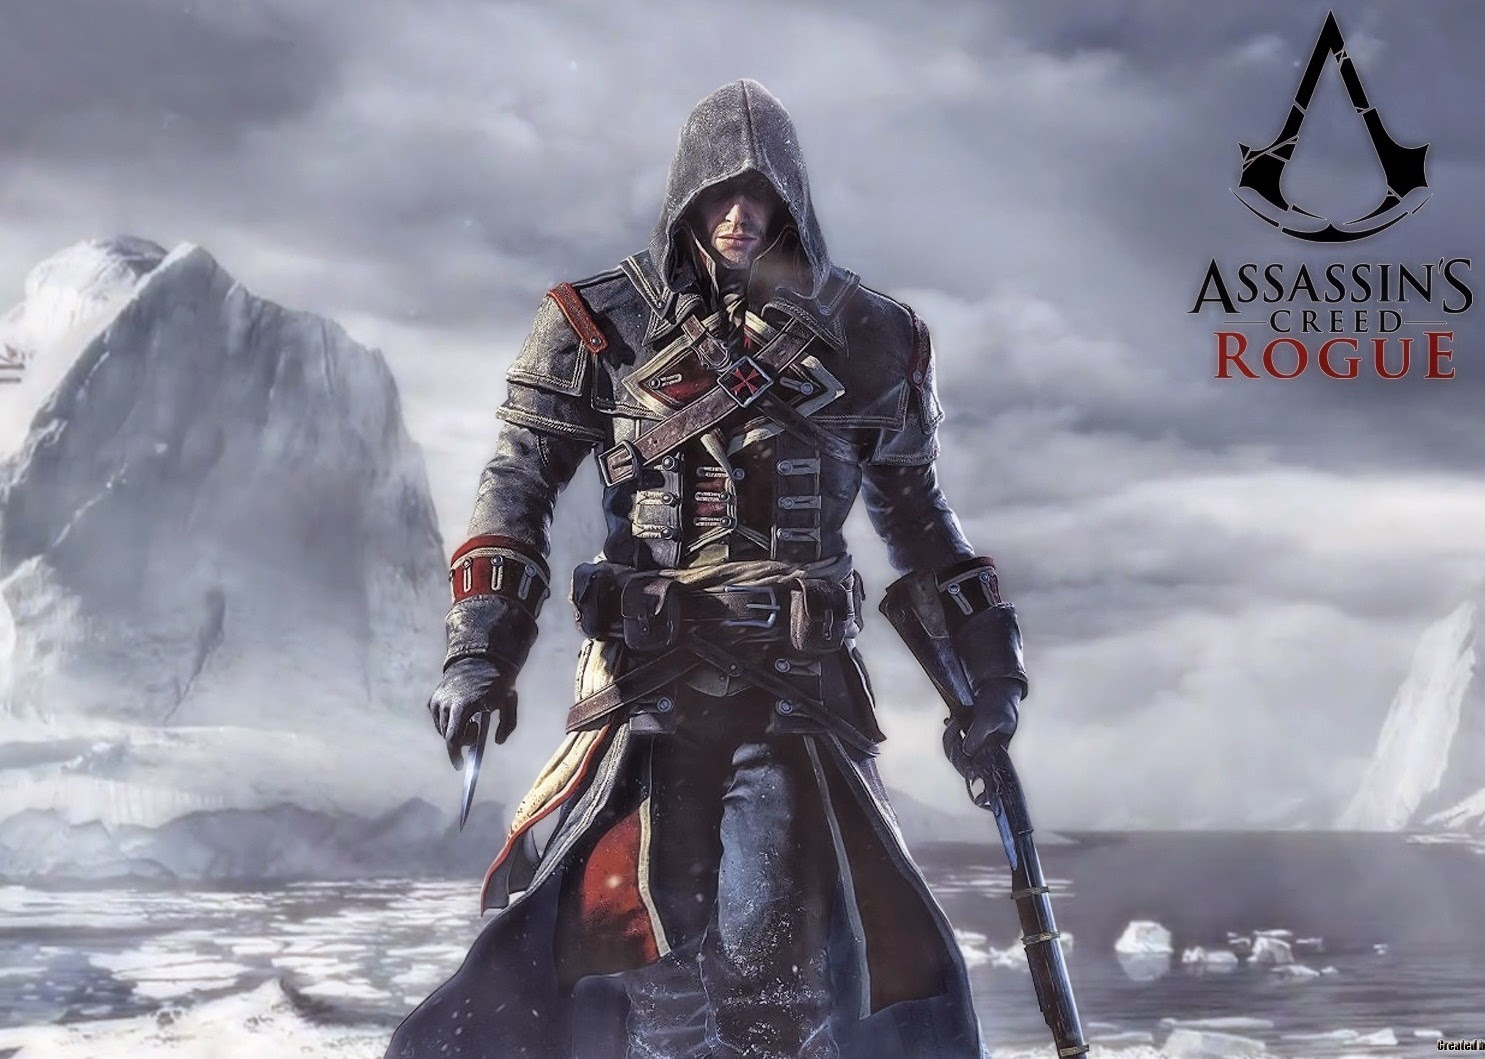 Assassin's Creed Rogue Review ~ 24 Century GameZ